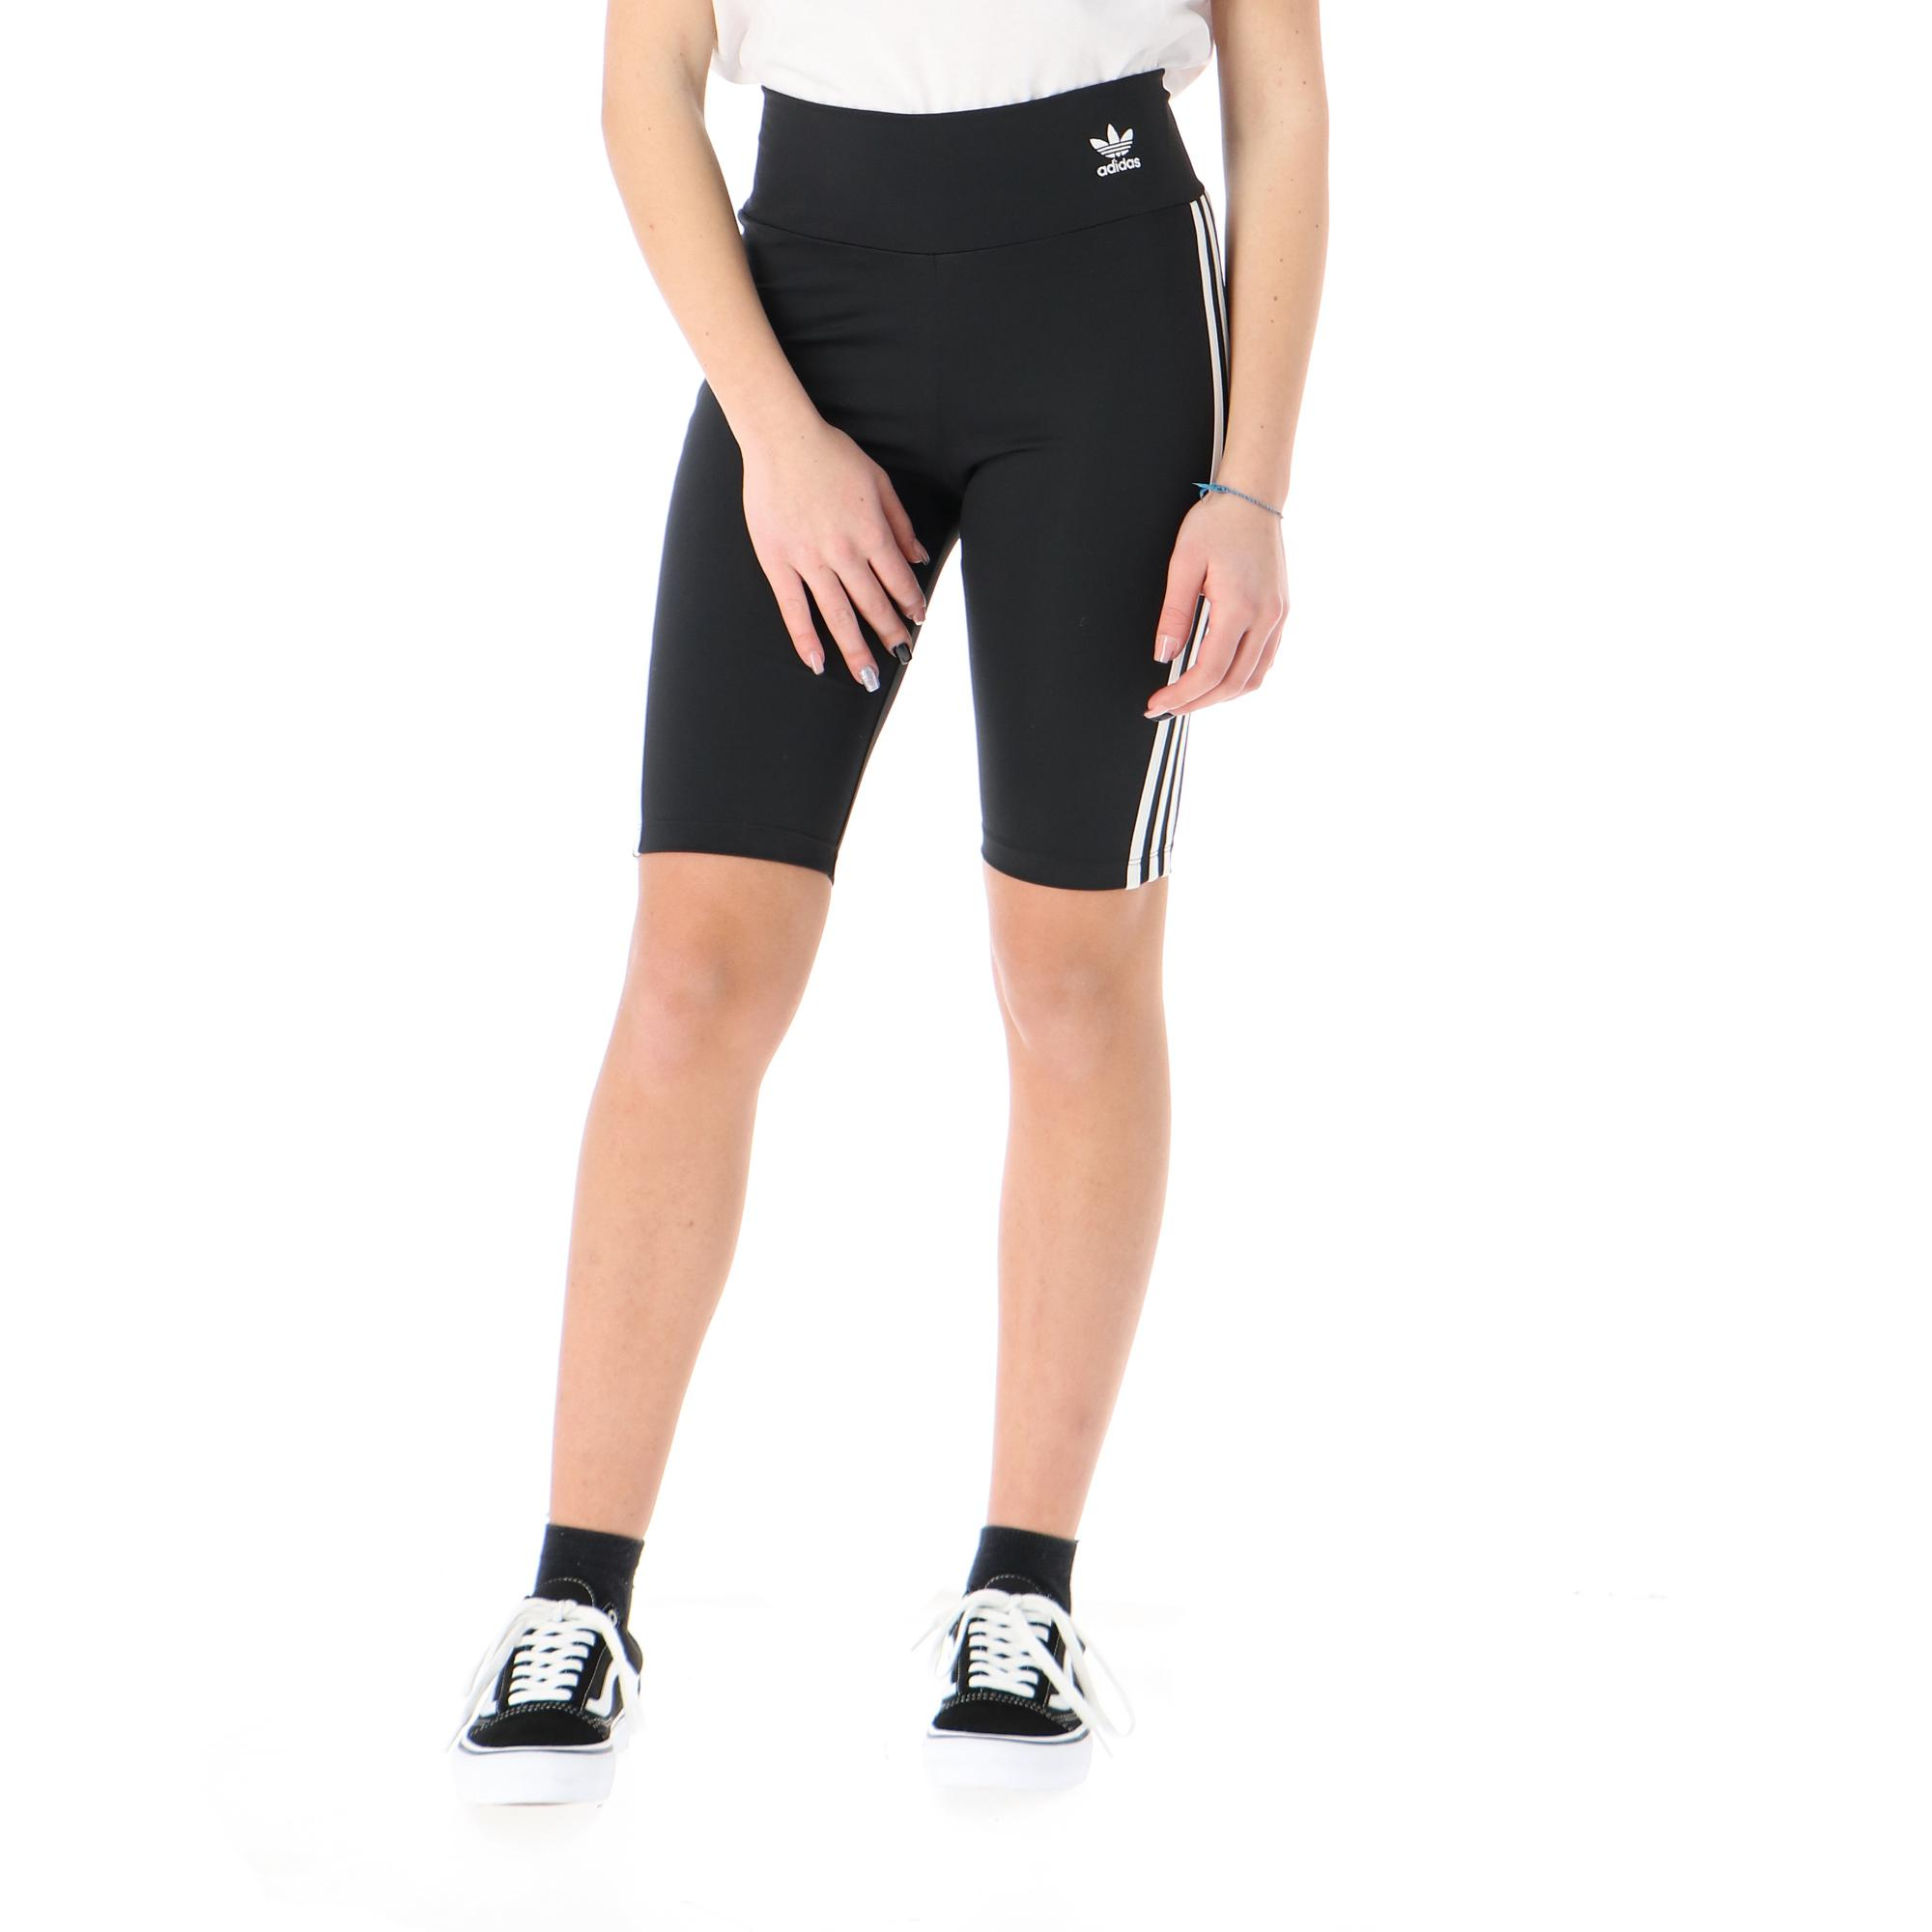 Adidas Short Tights Black white